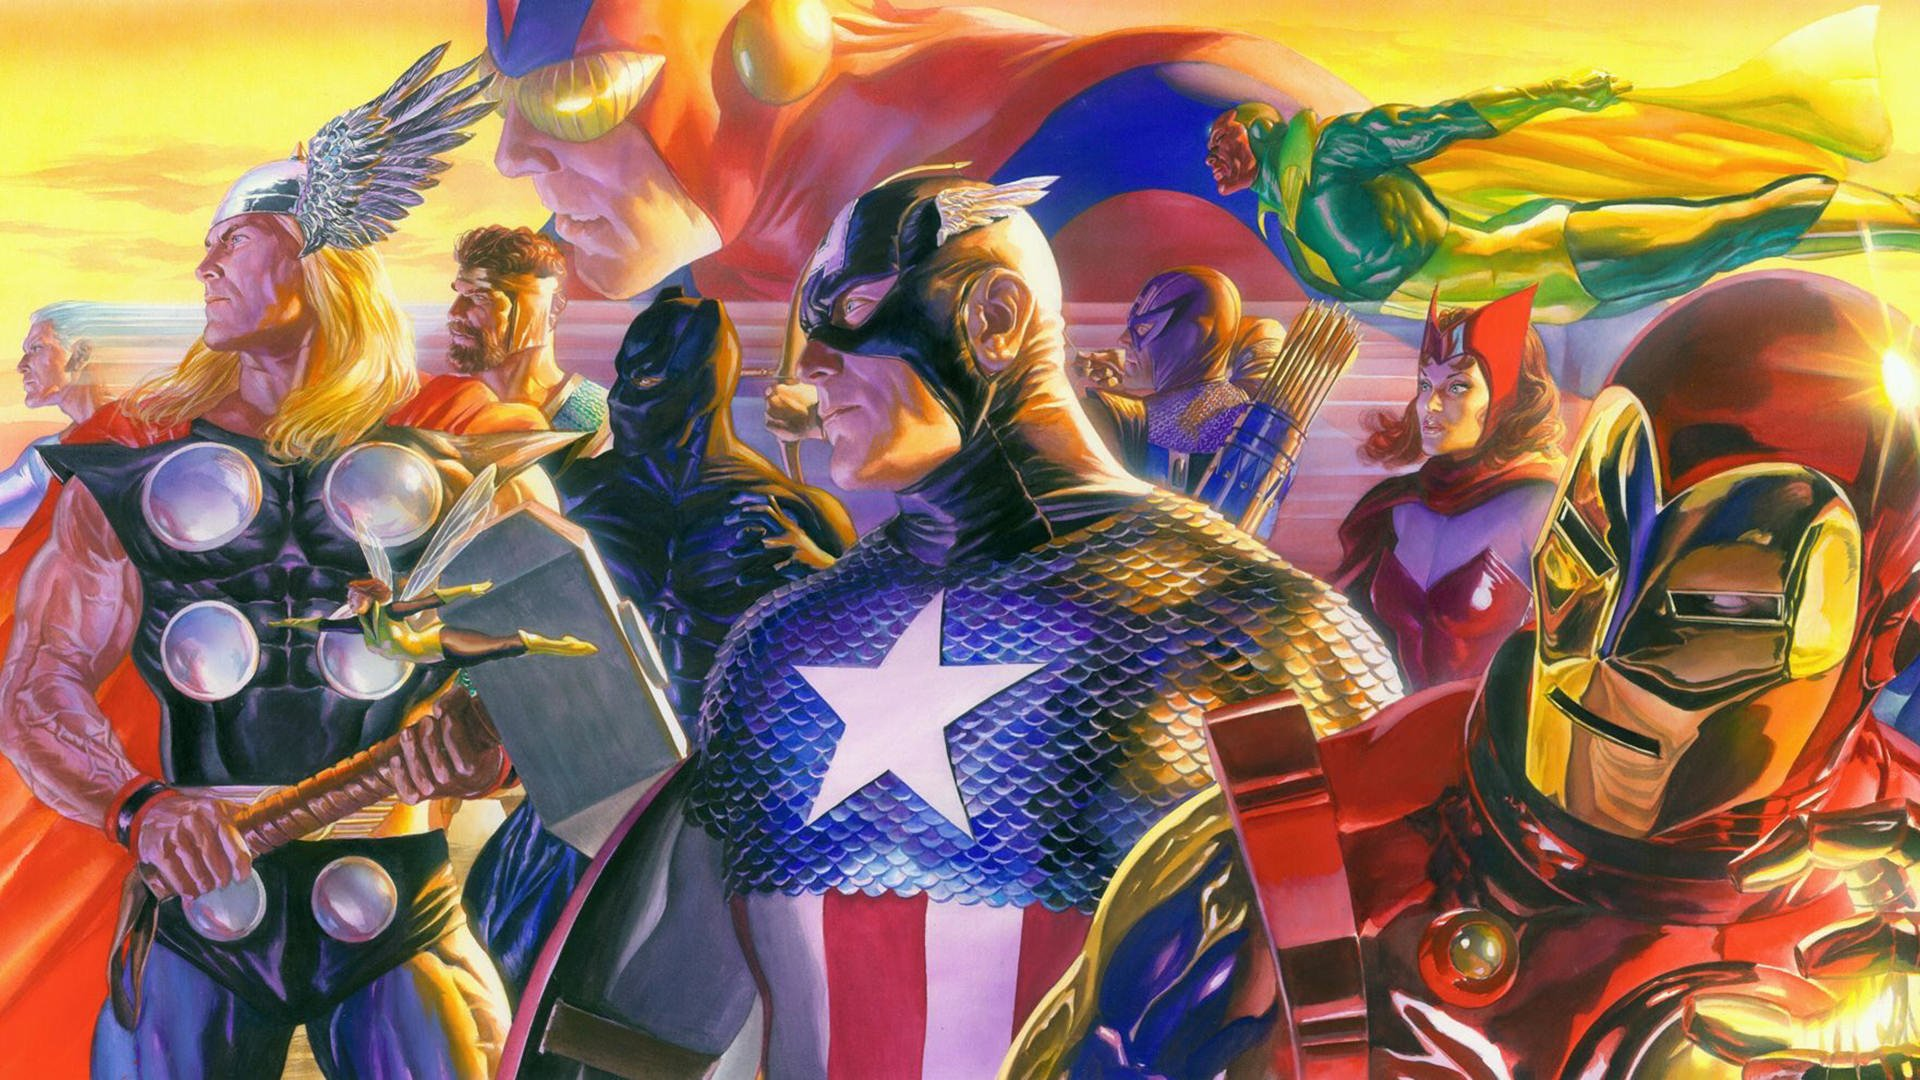 Cool Marvel Wallpapers Hd Epicheroes Select Image Gallery